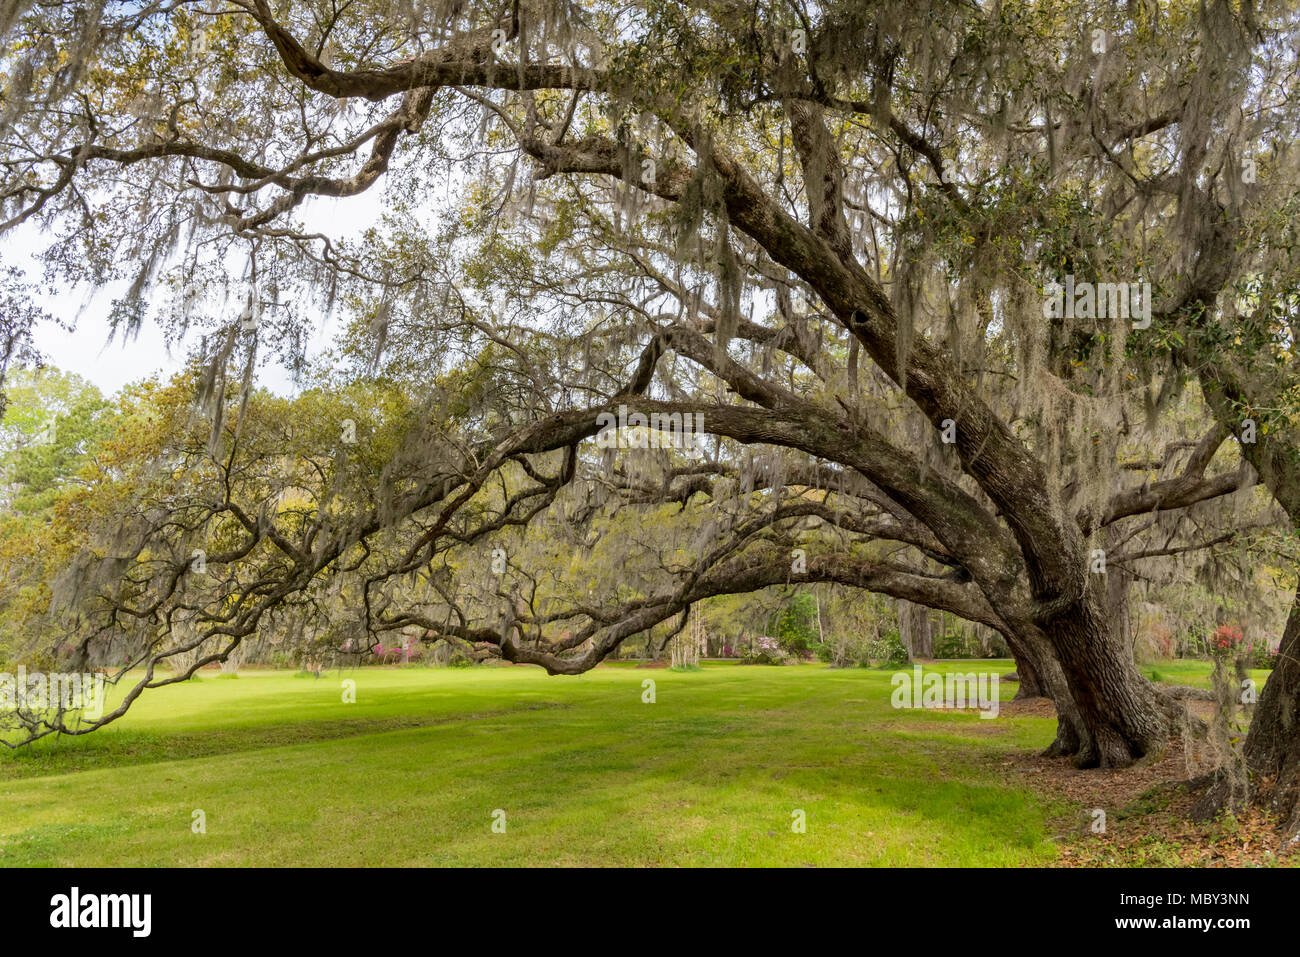 Live Oaks Bow Over Green Grass in southern garden - Stock Image